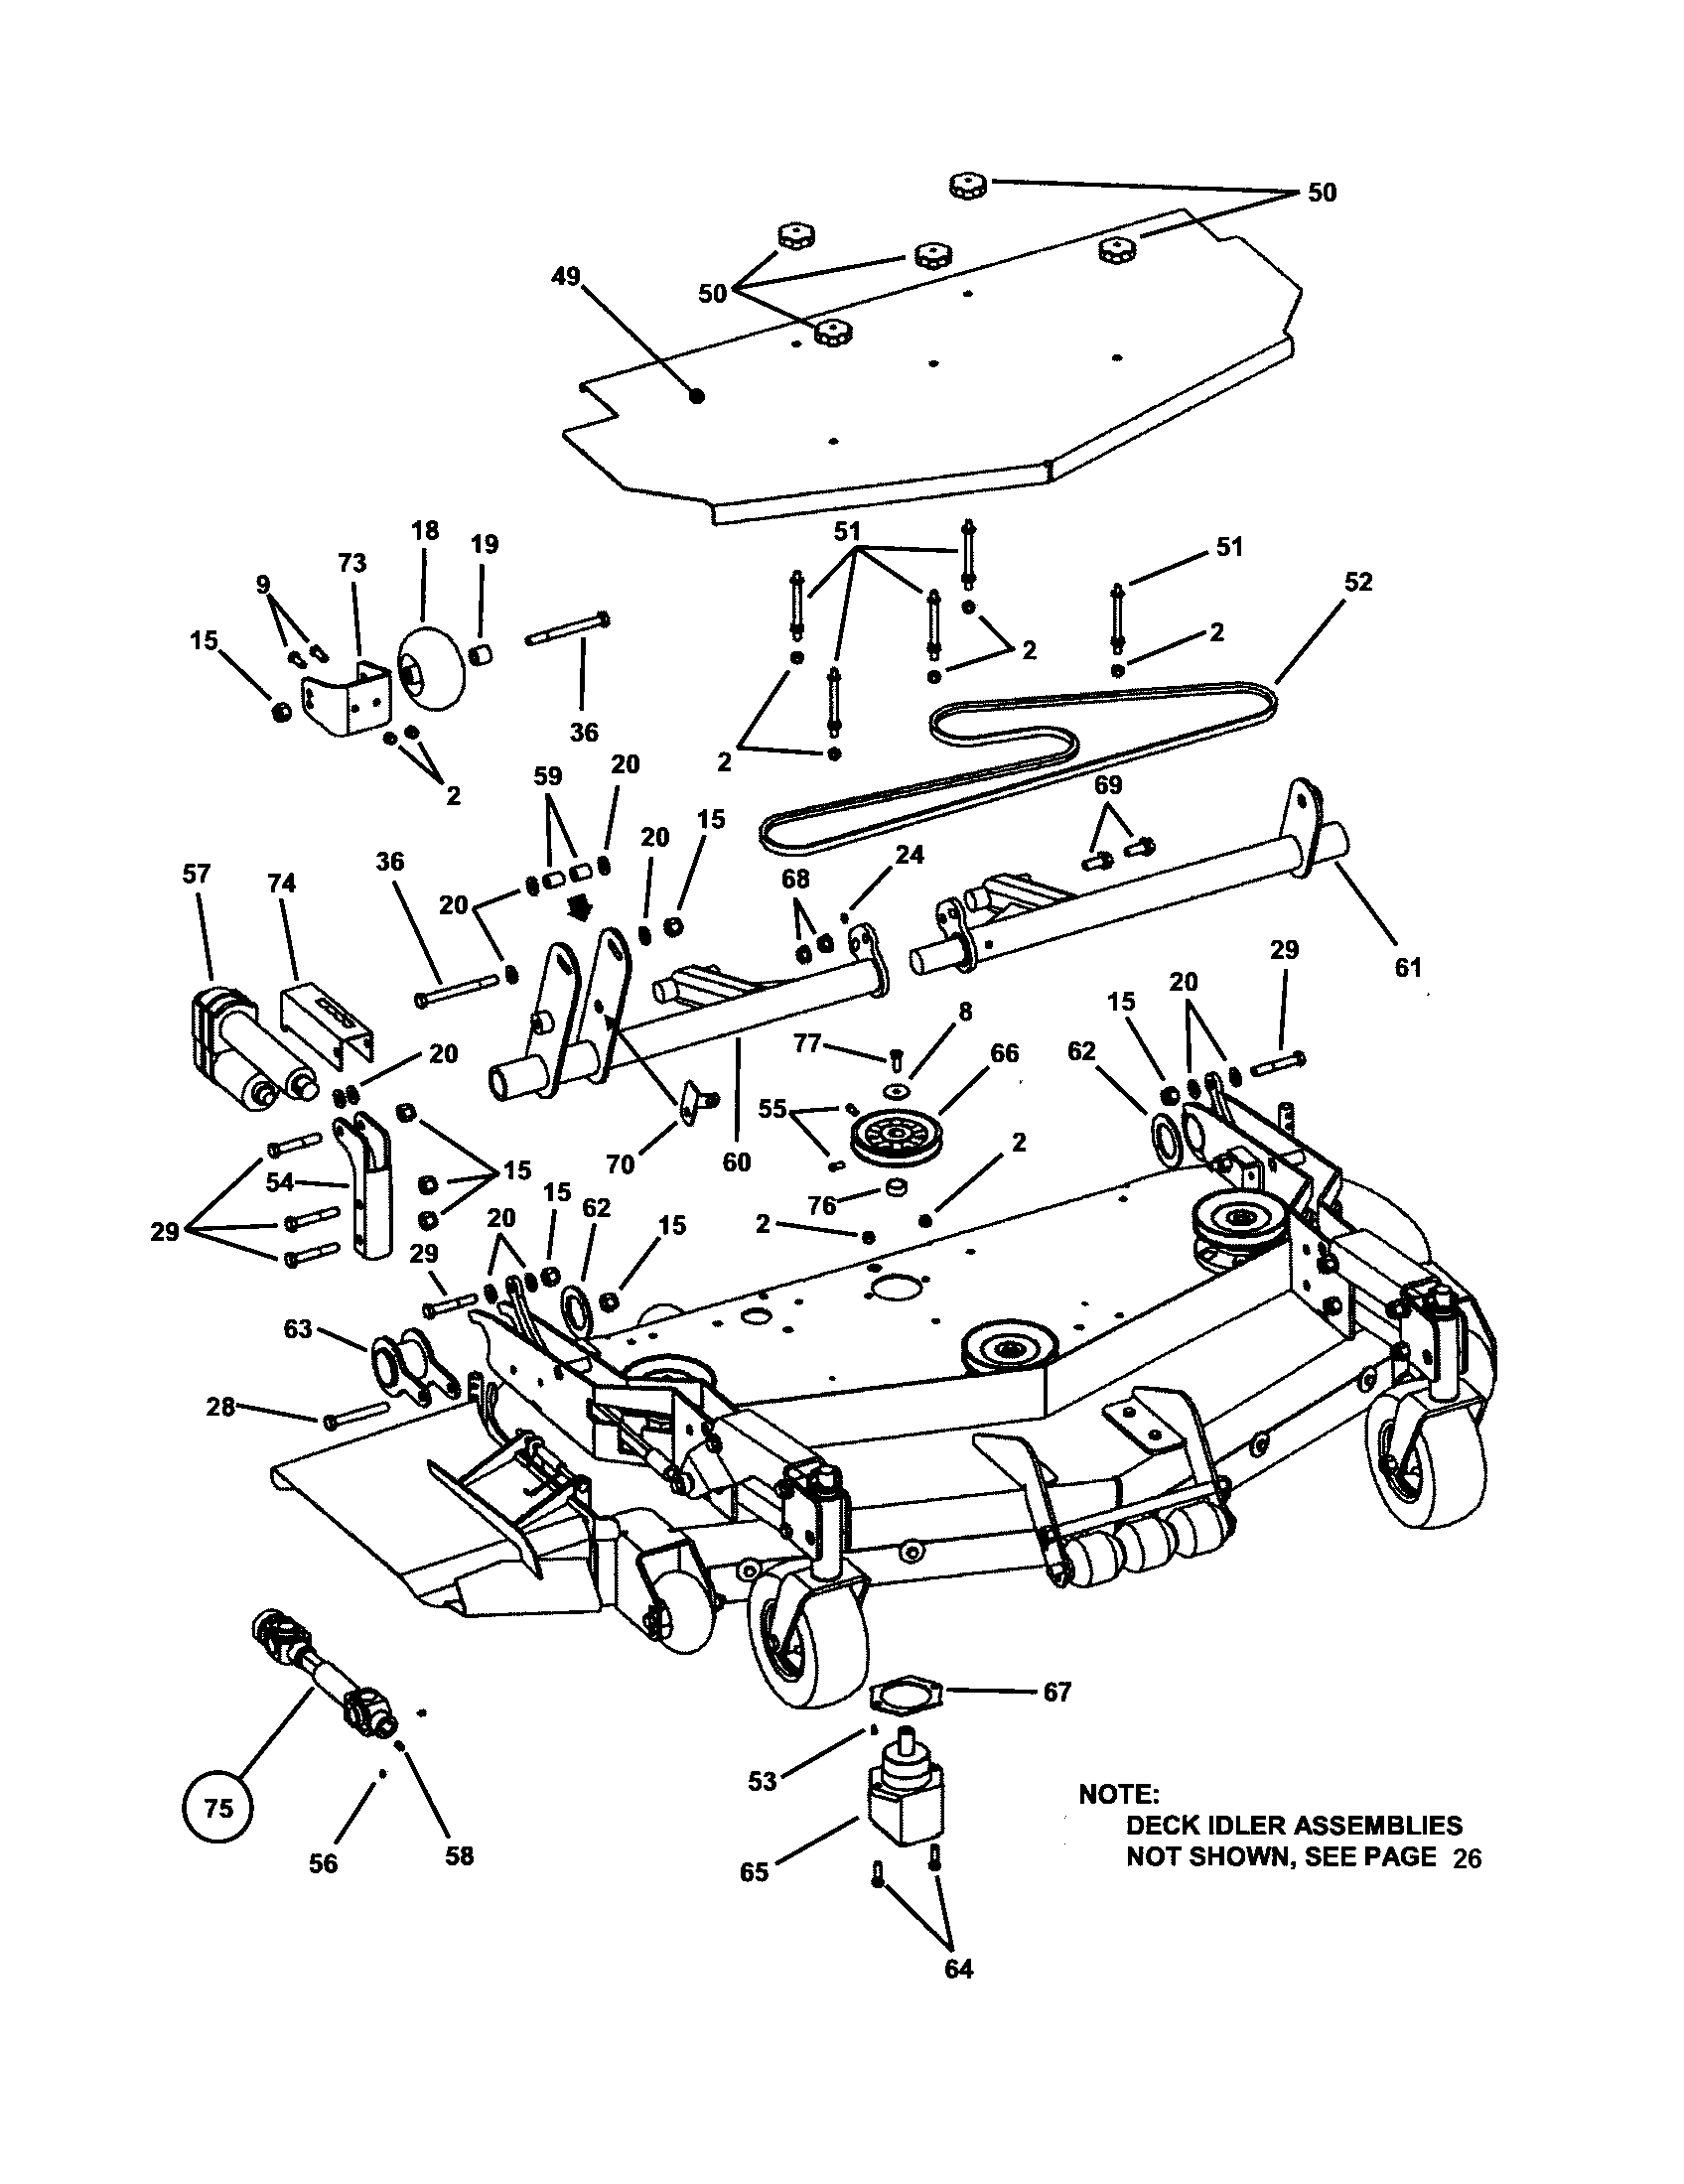 hight resolution of diagram as well as ariens snow blower parts diagram wiring harness